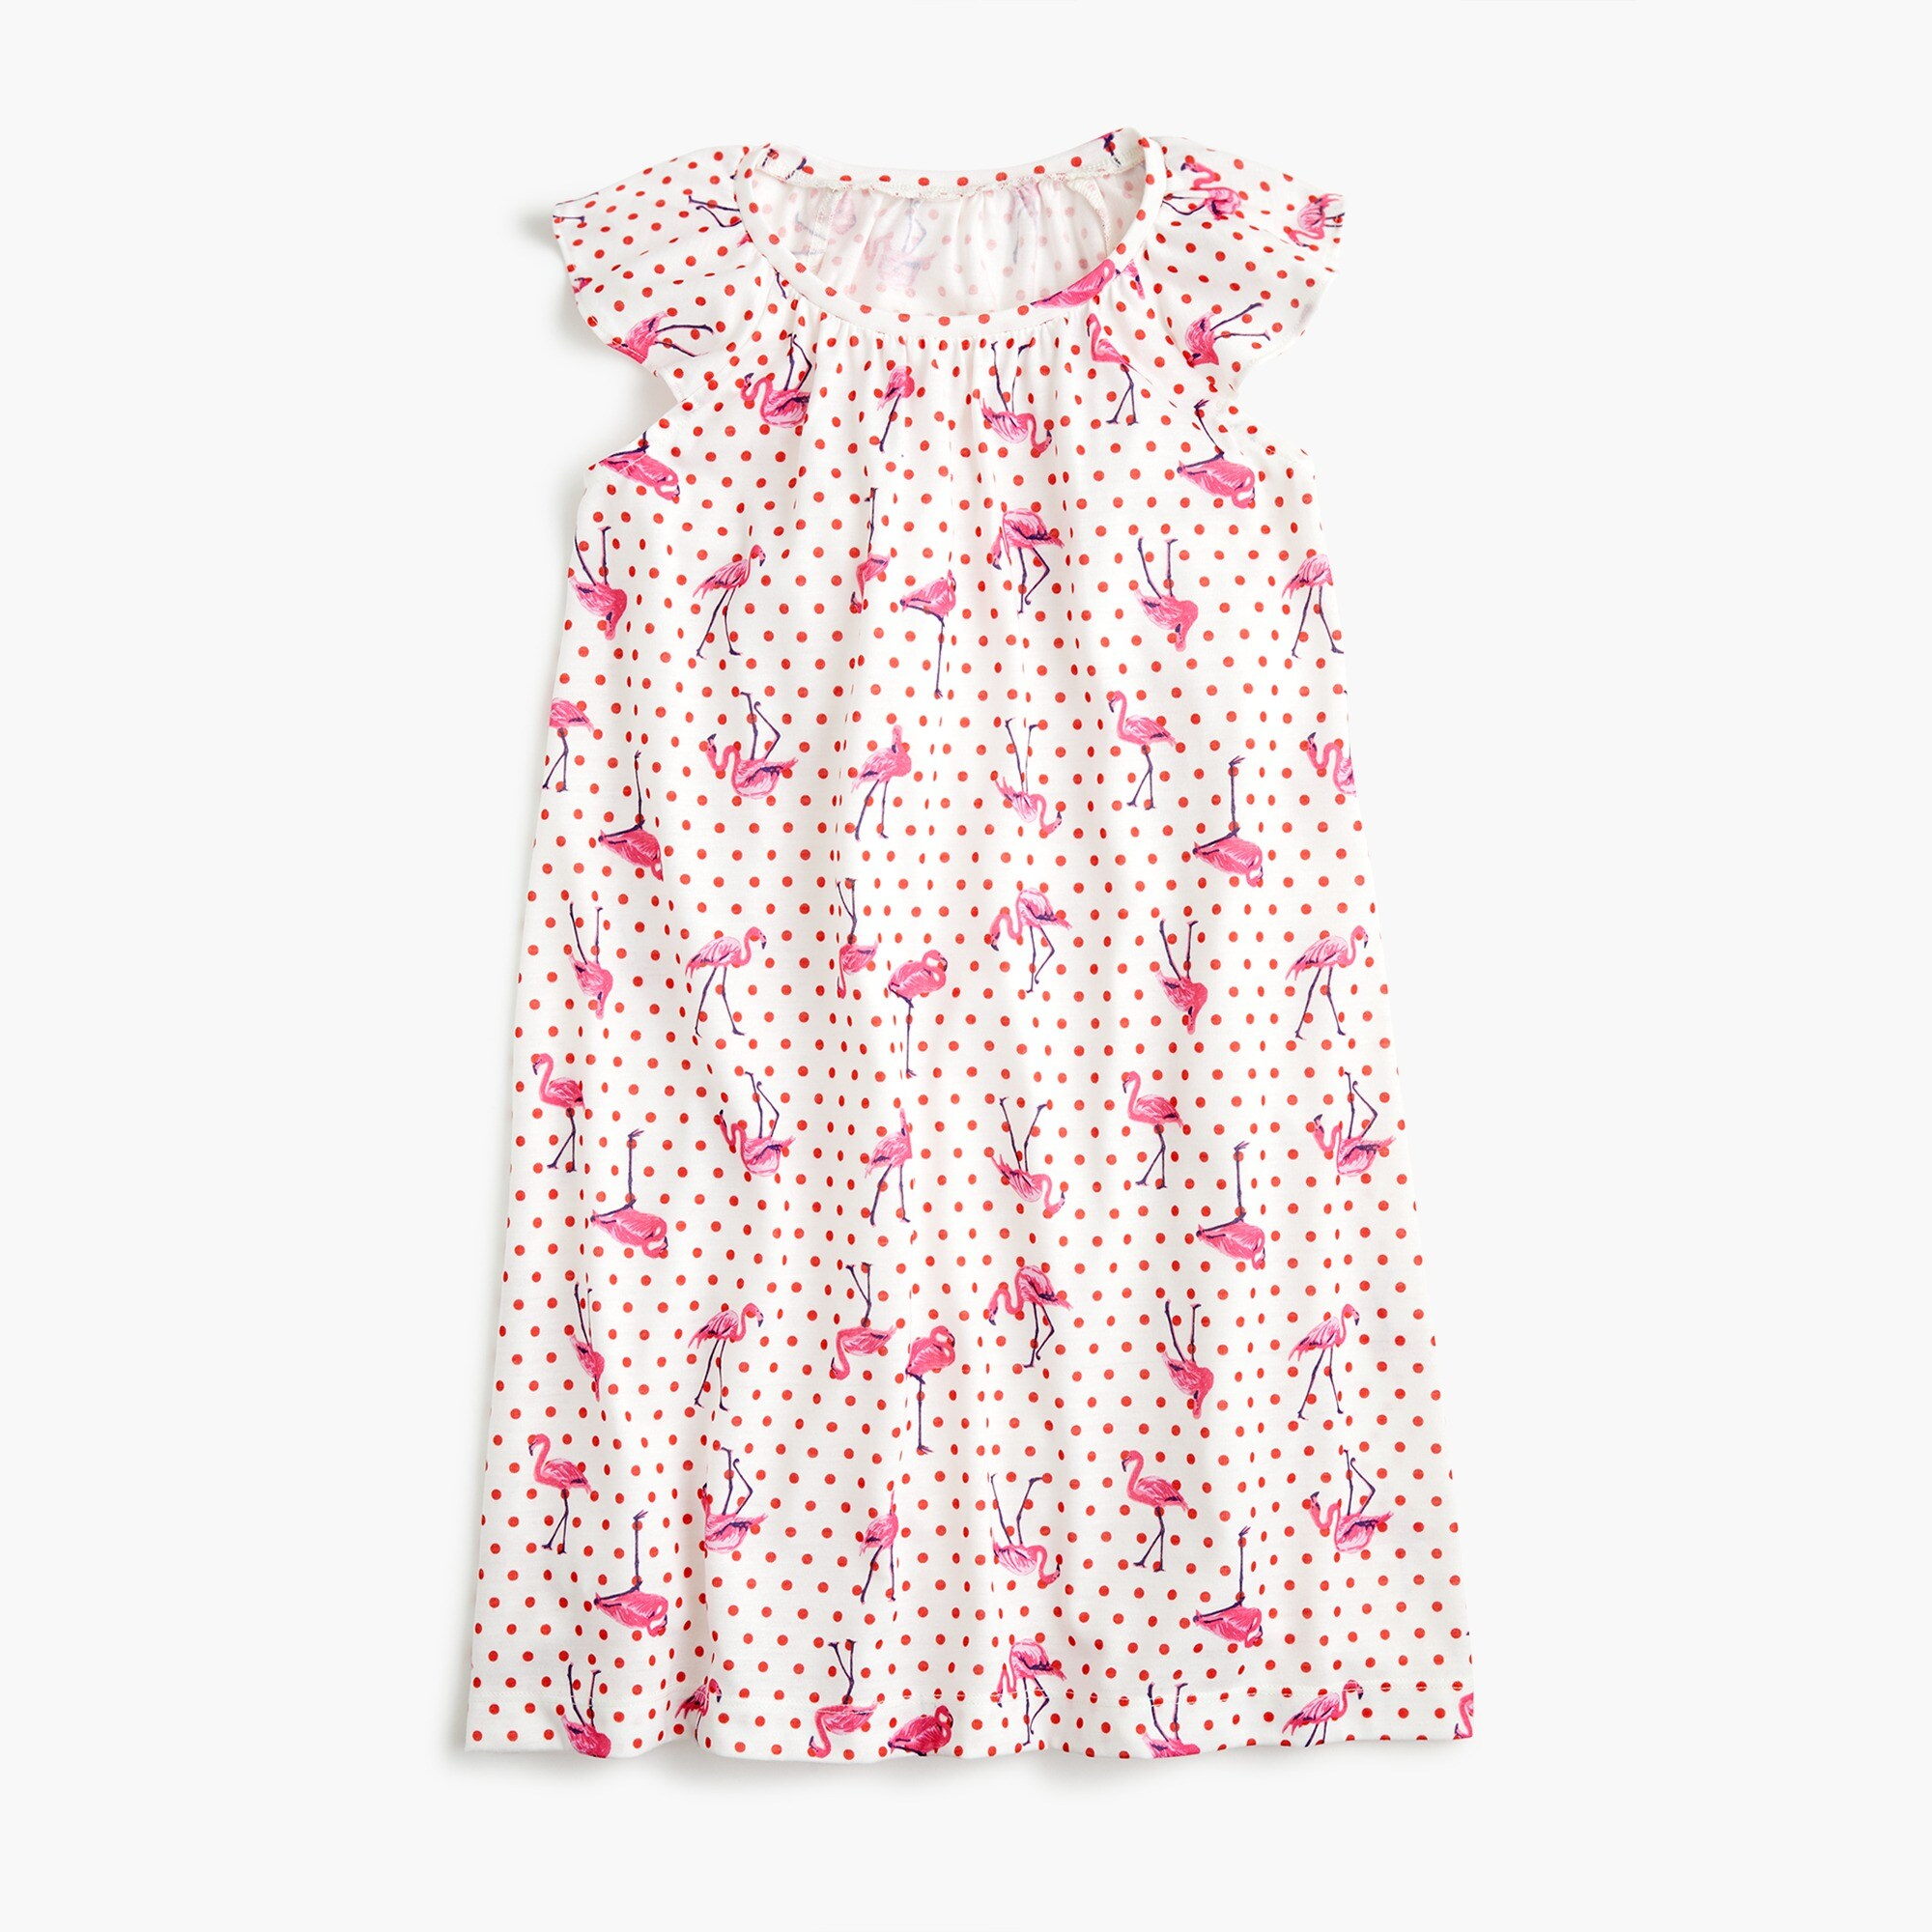 Image 1 for Girls' flutter-sleeve nightgown in flamingo dot